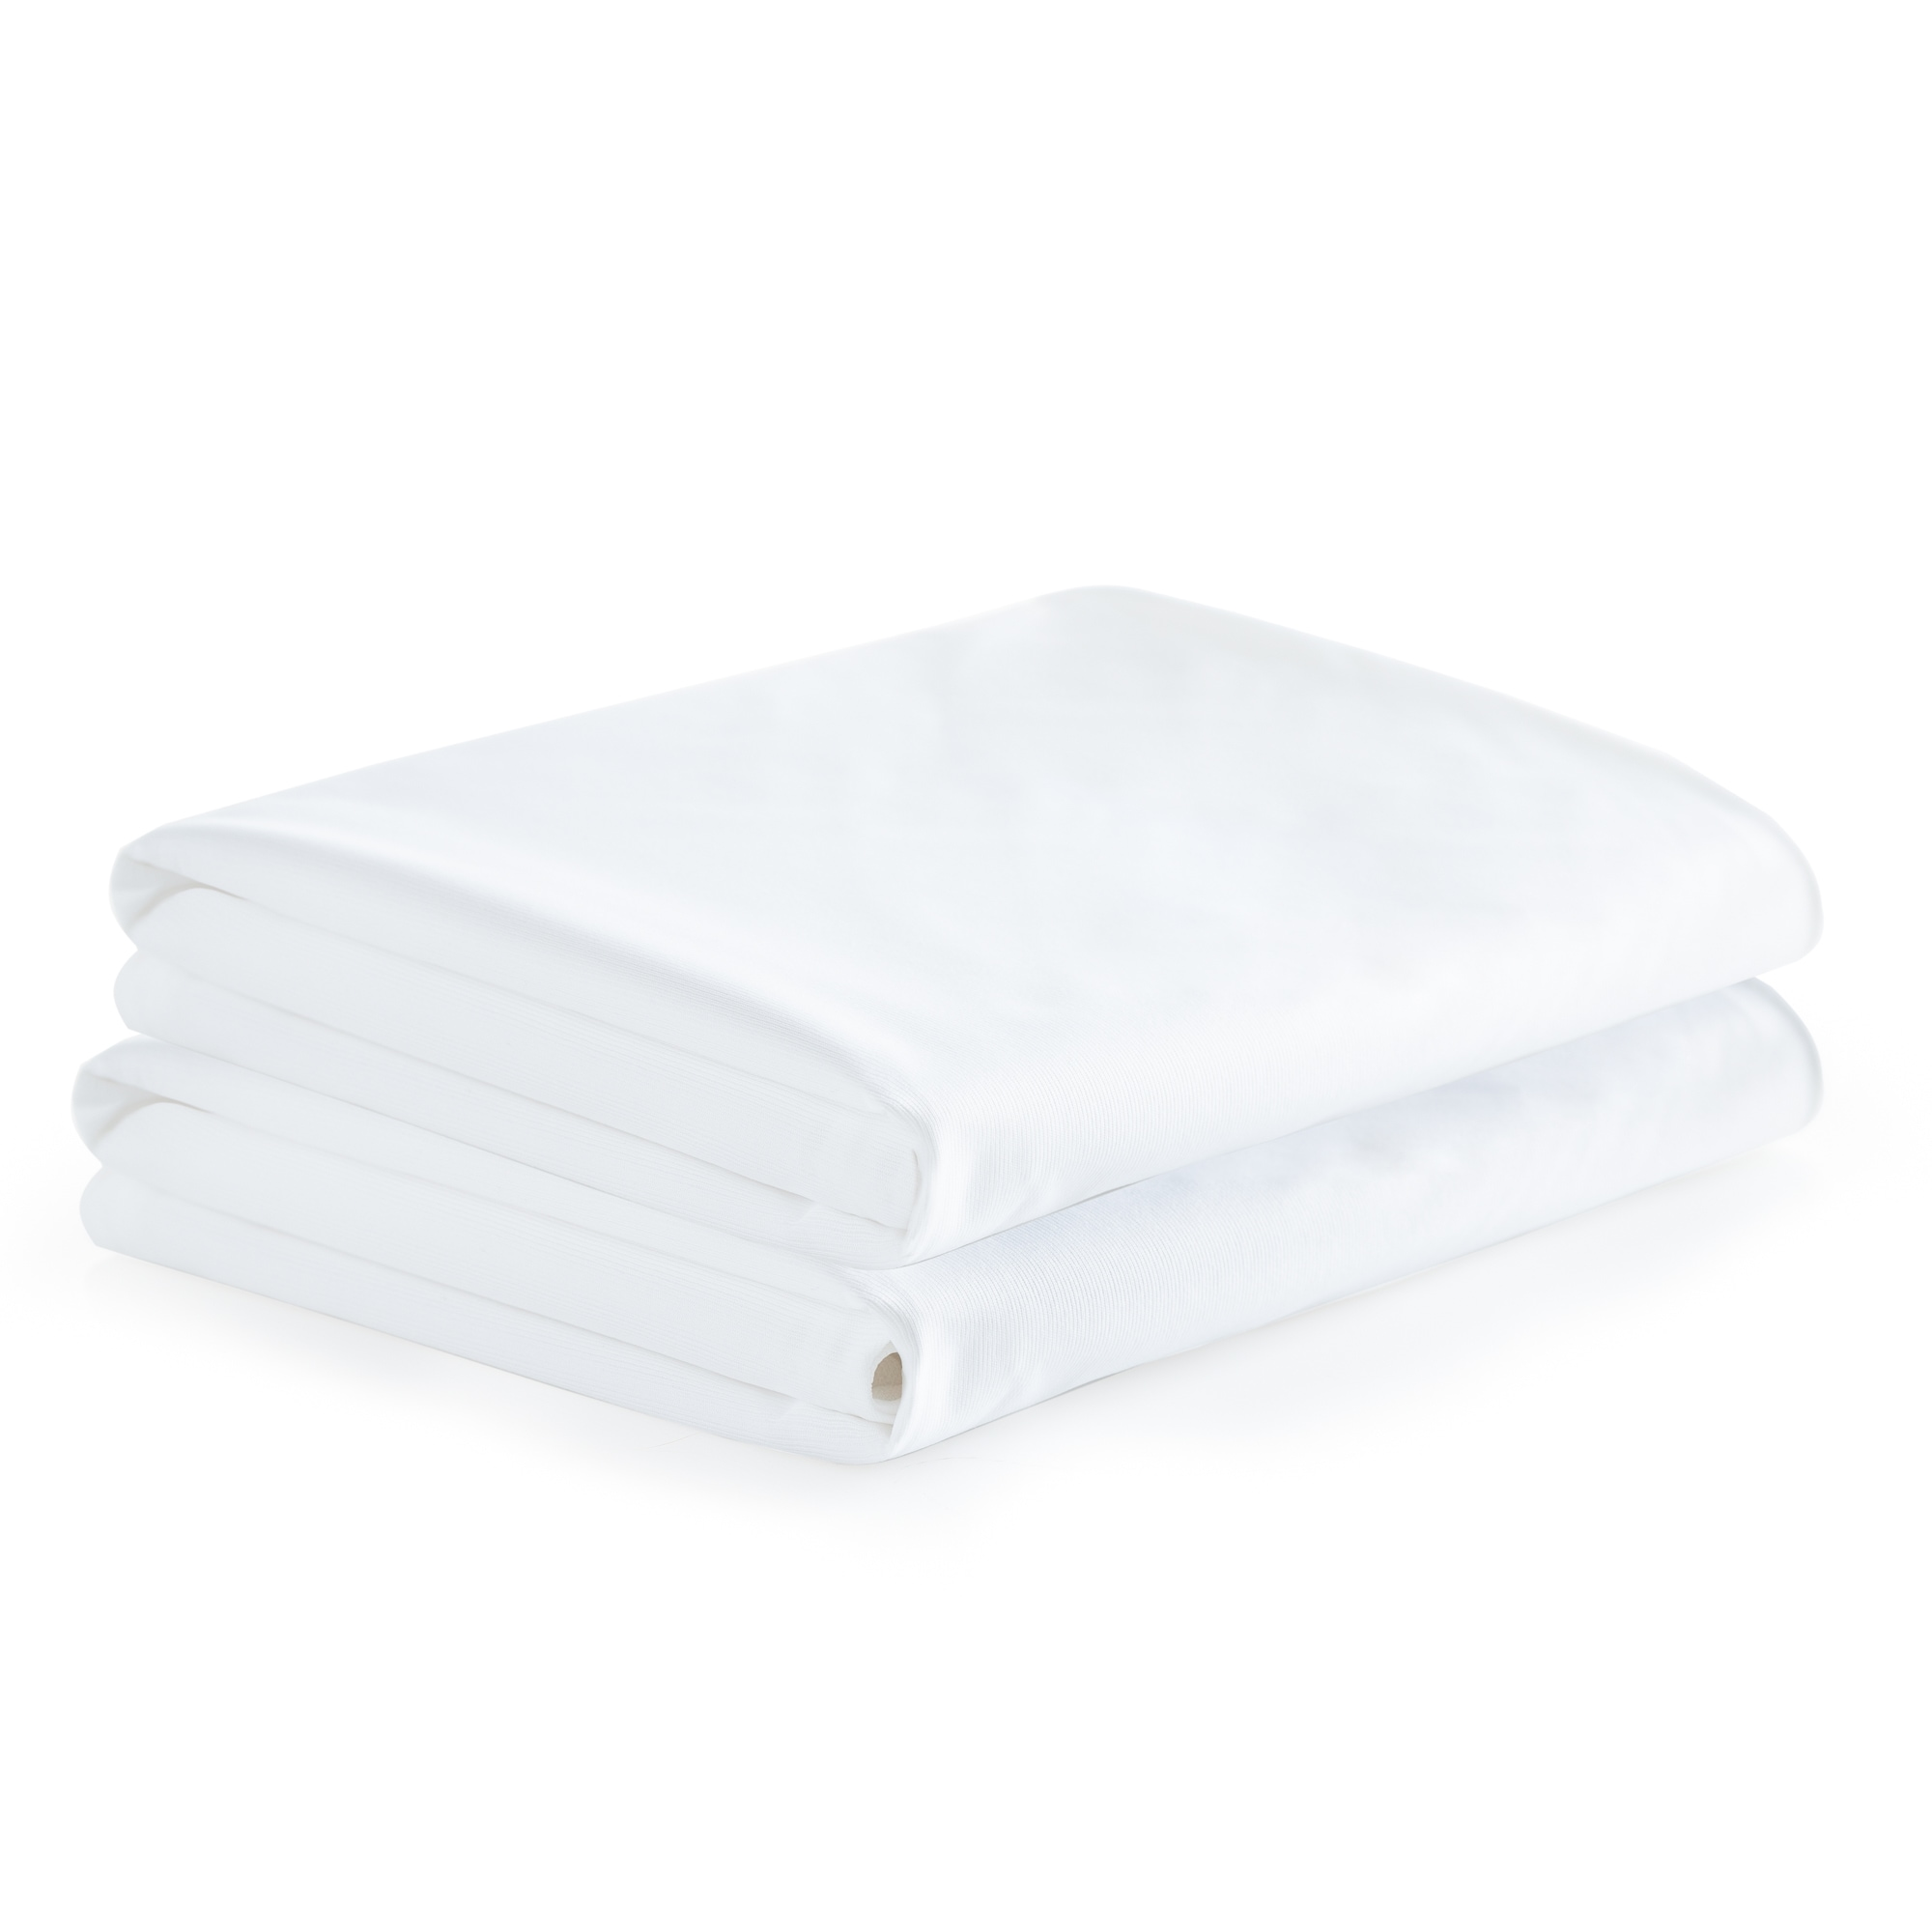 white pillow collection set hotel plain cotton envelope size bare bedroom luxury main standart storage product protector of solid protectors standard